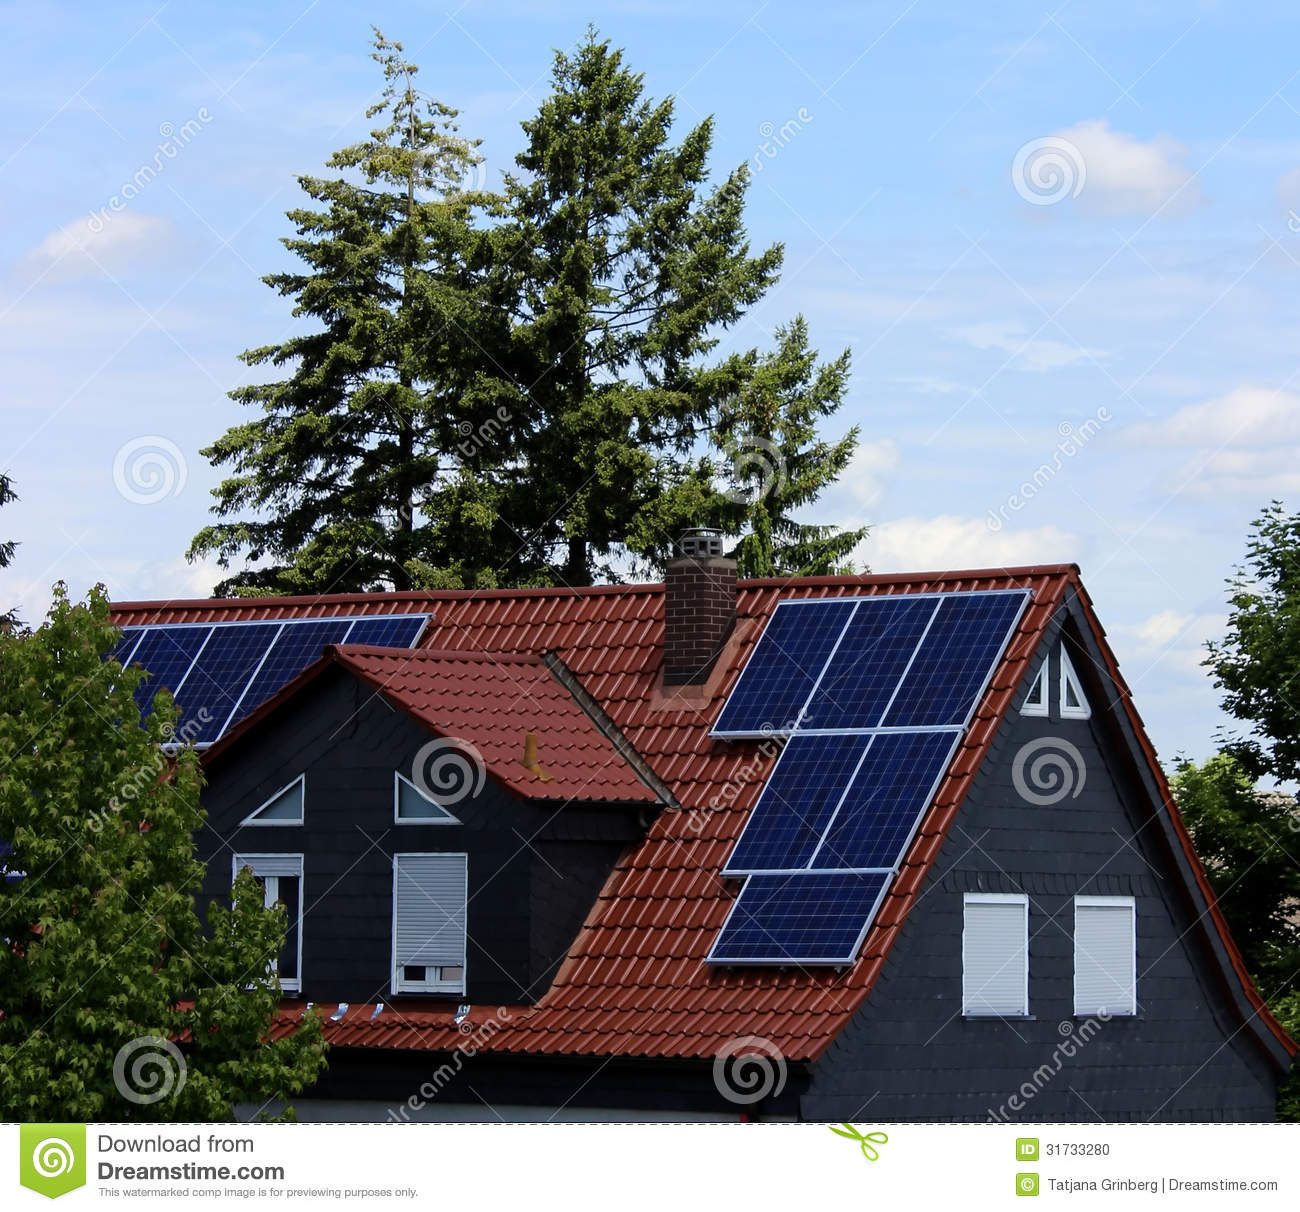 Solar Cells On A Roof Stock Photo - Image: 31733280